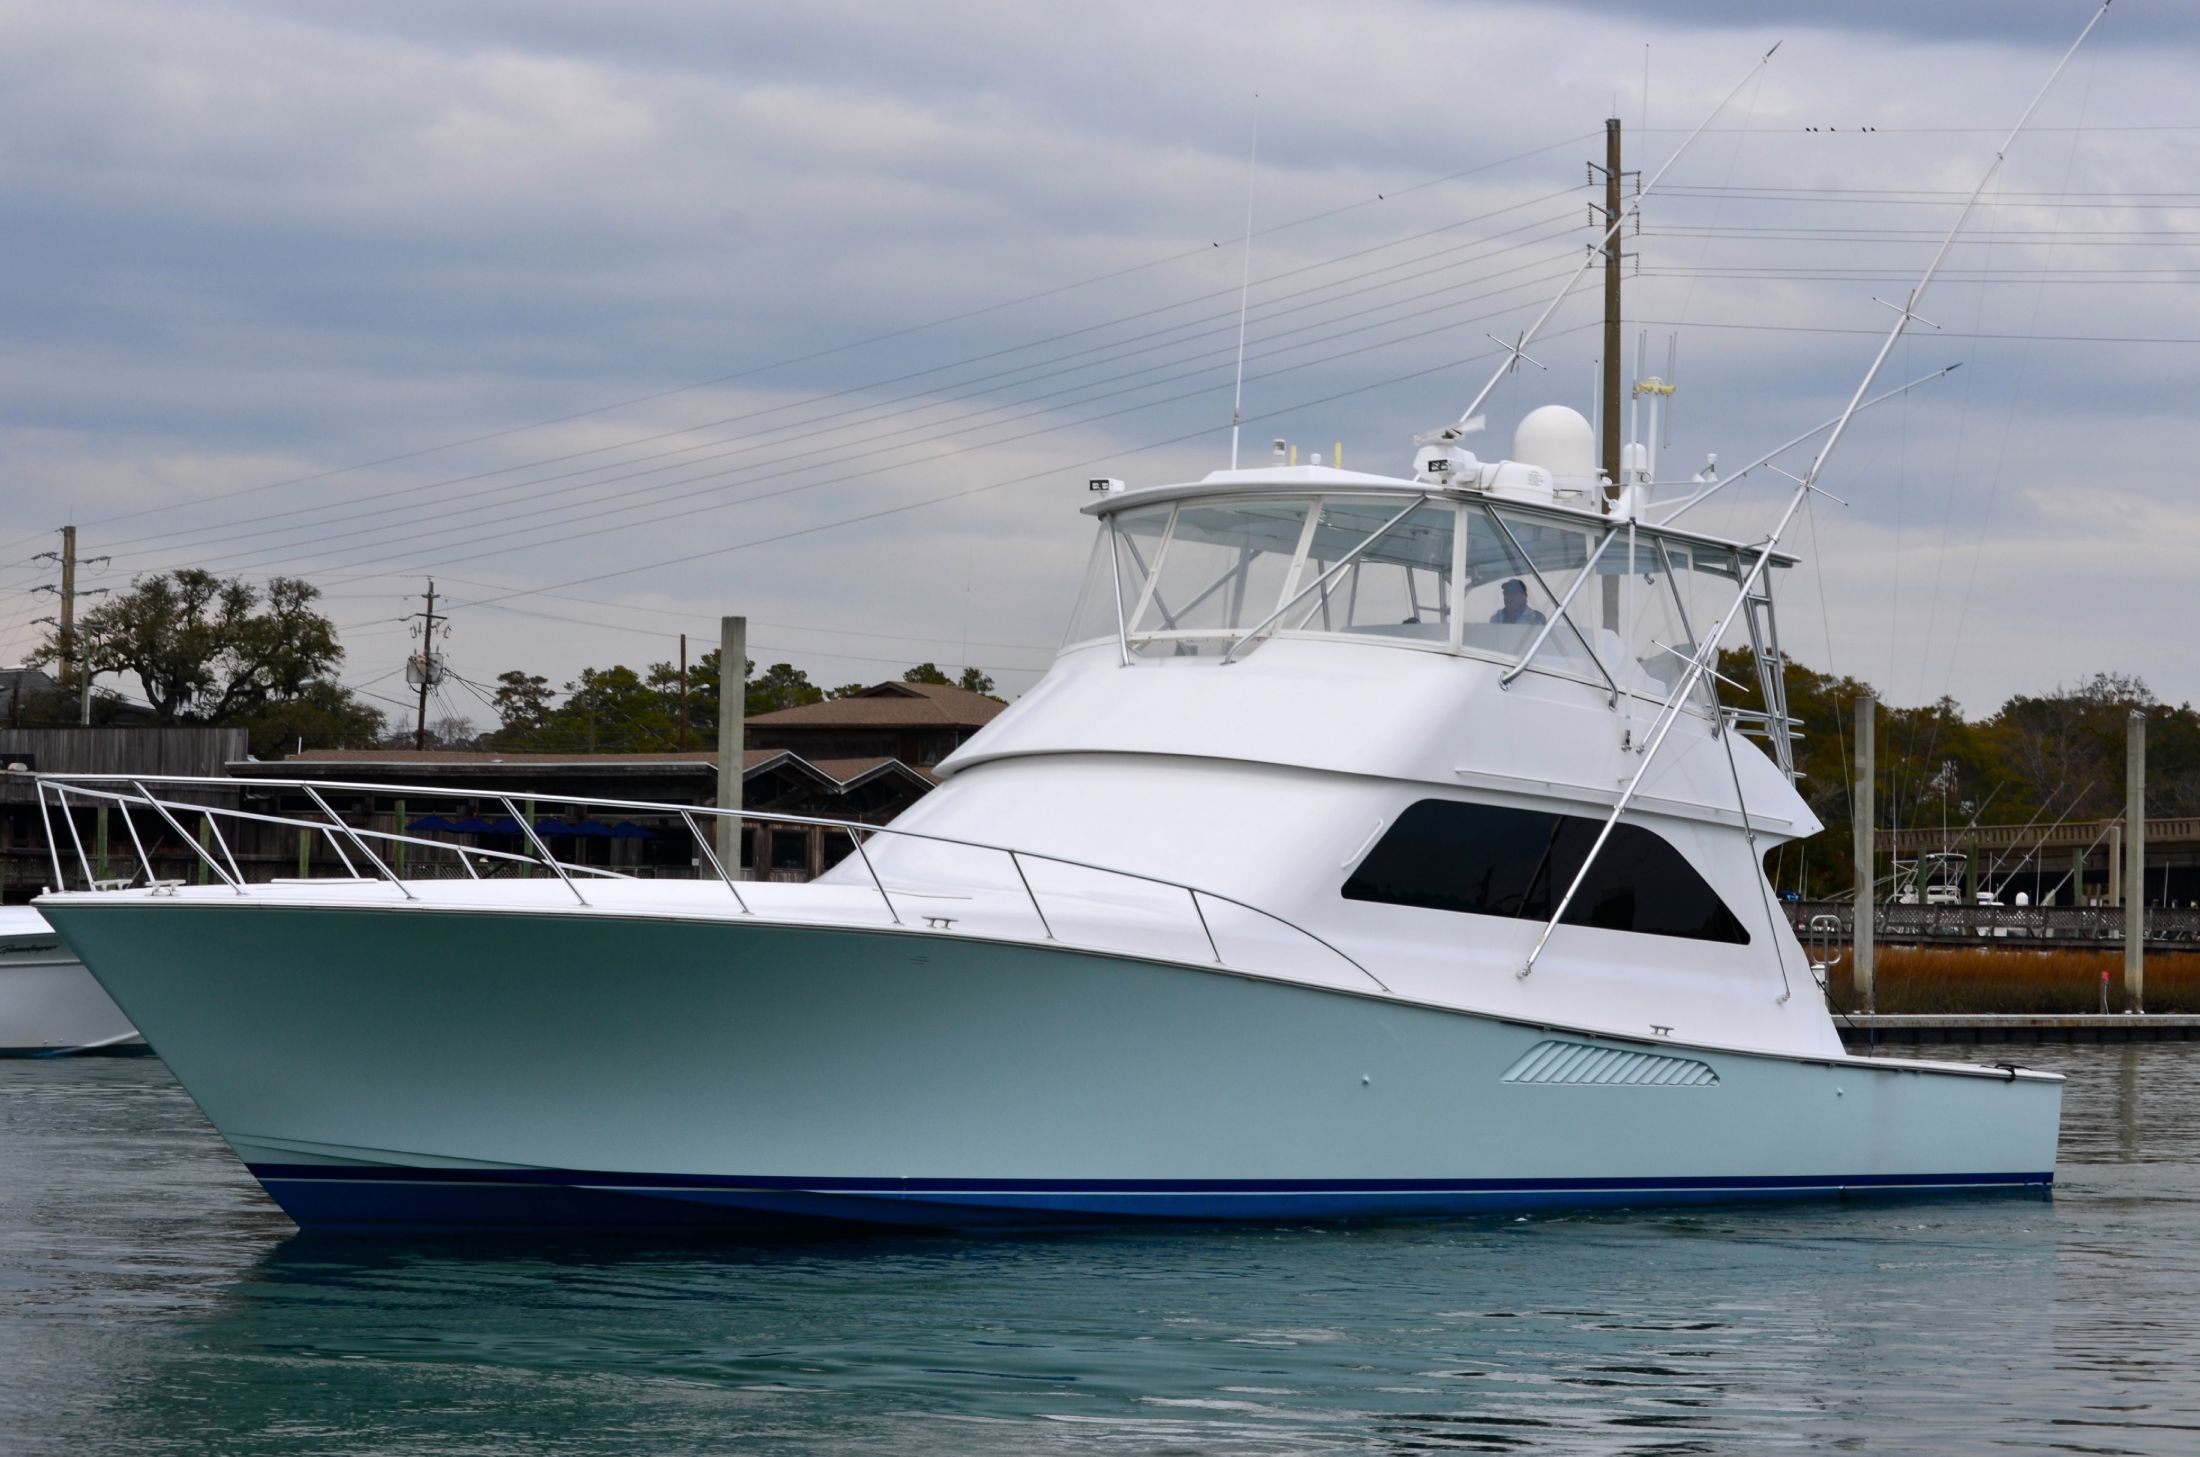 2001 61 viking yachts for sale in atlantic city nj us for Viking sport fish